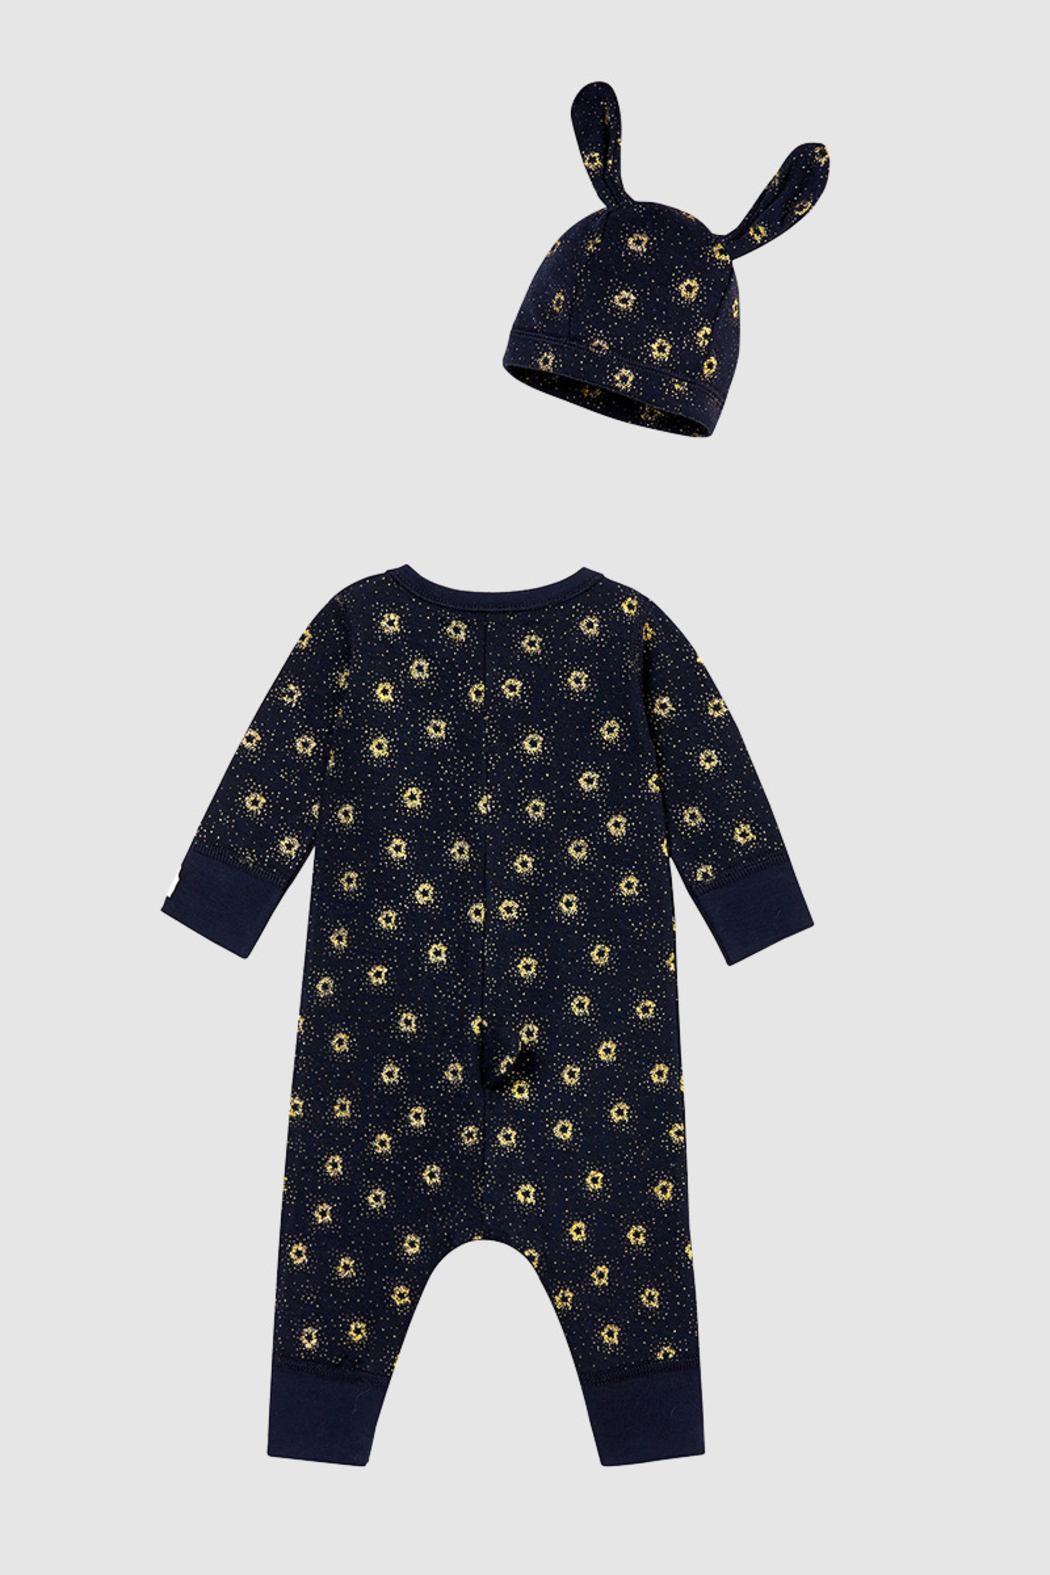 Petit Bateau Baby Gift Set - Unisex Romper and Beanie Hat (Navy) - Front Full Image